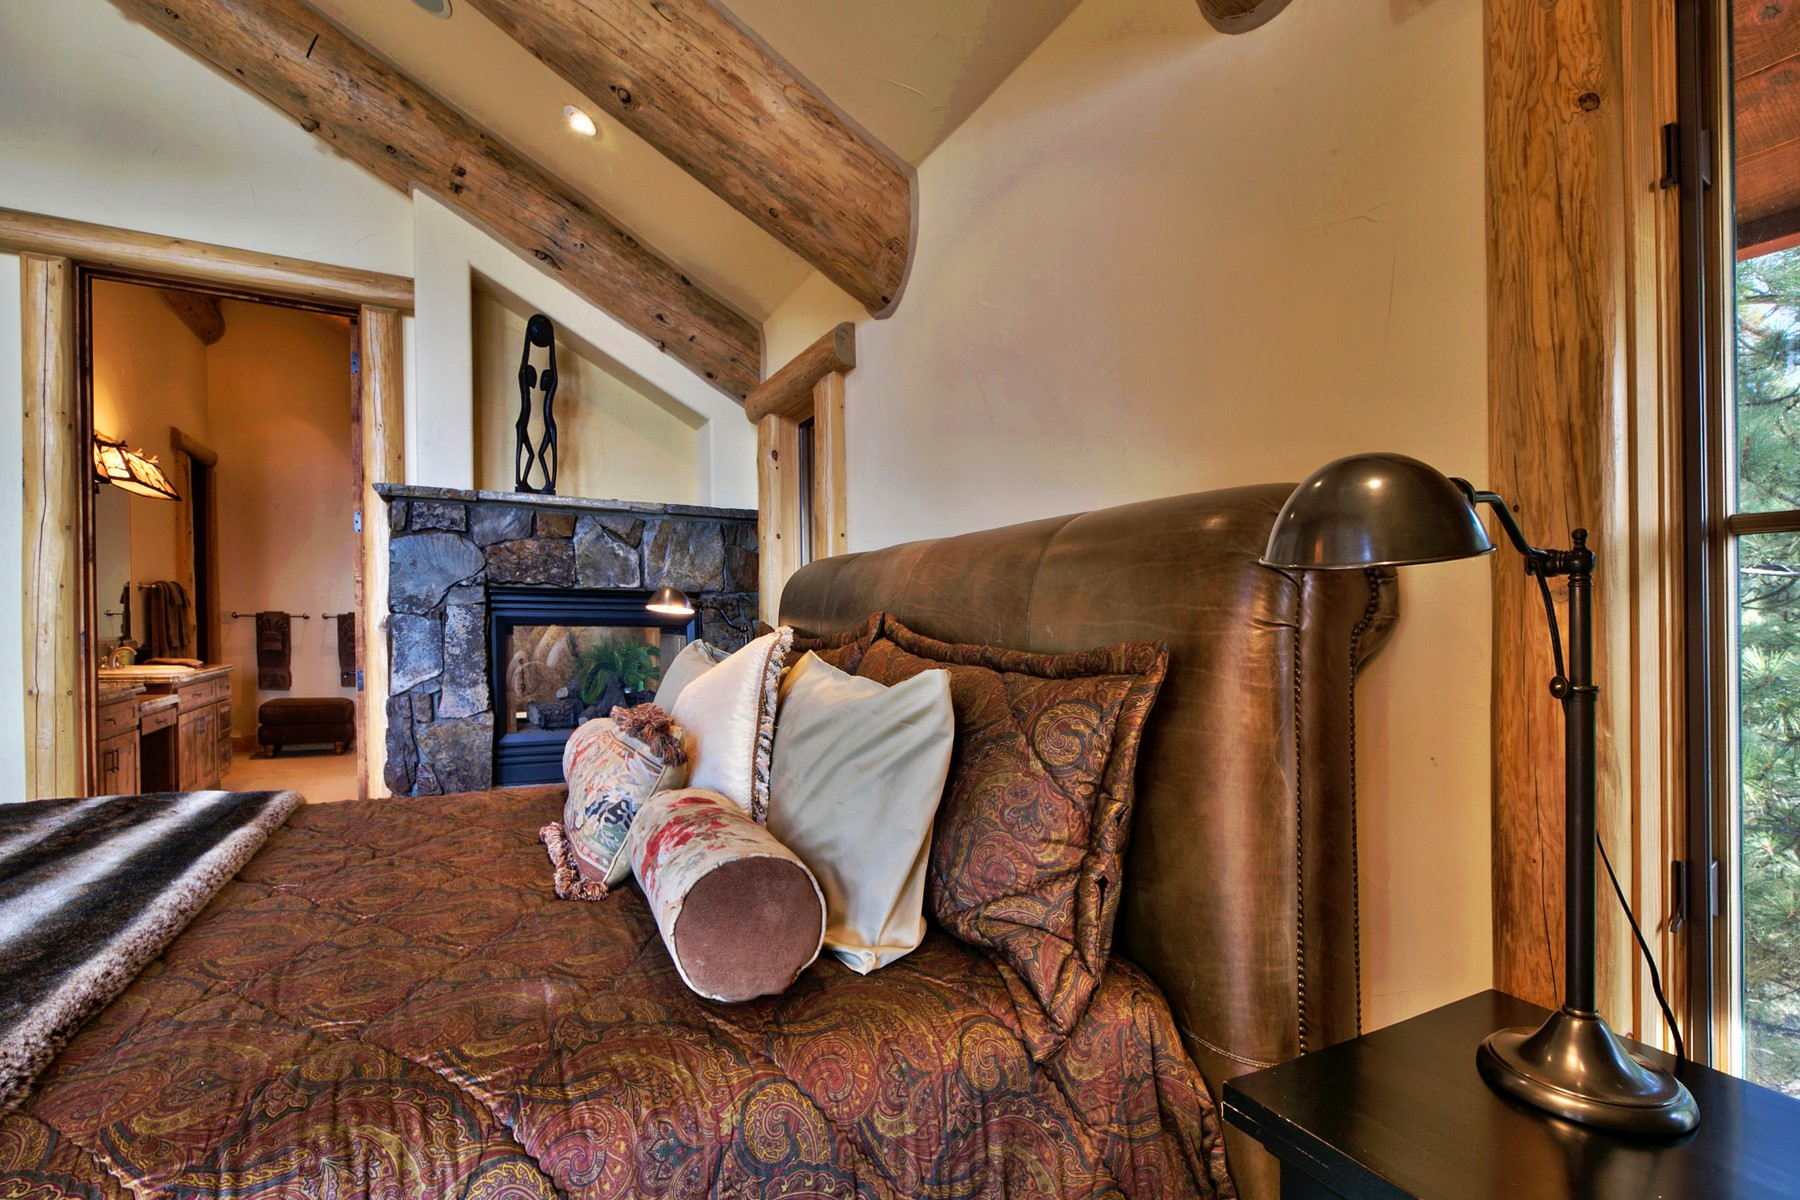 Additional photo for property listing at 591 Pinto Court 591 Pinto Ct Incline Village, Nevada 89451 United States